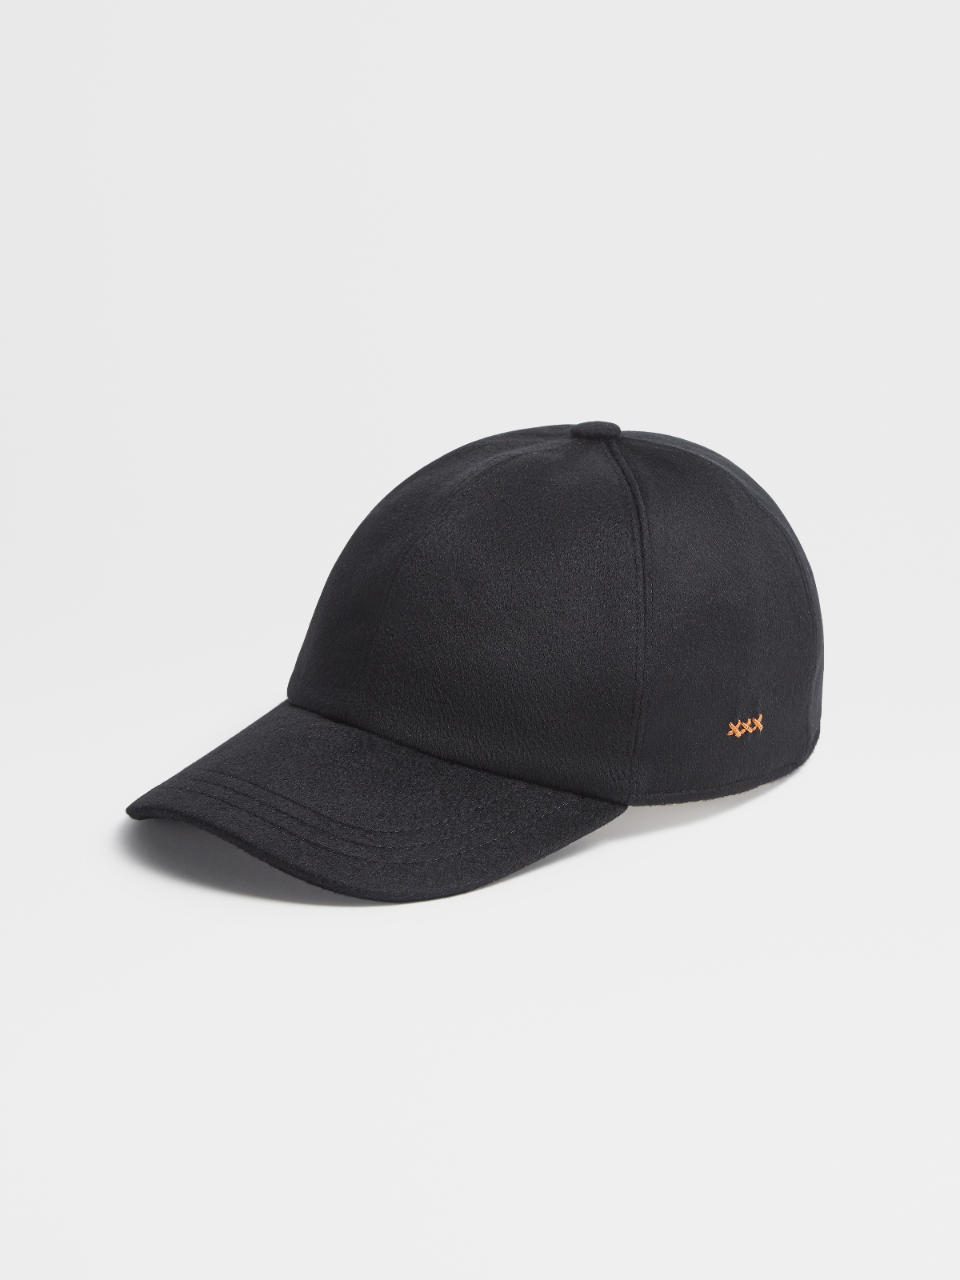 Cashmere Solid Baseball Cap